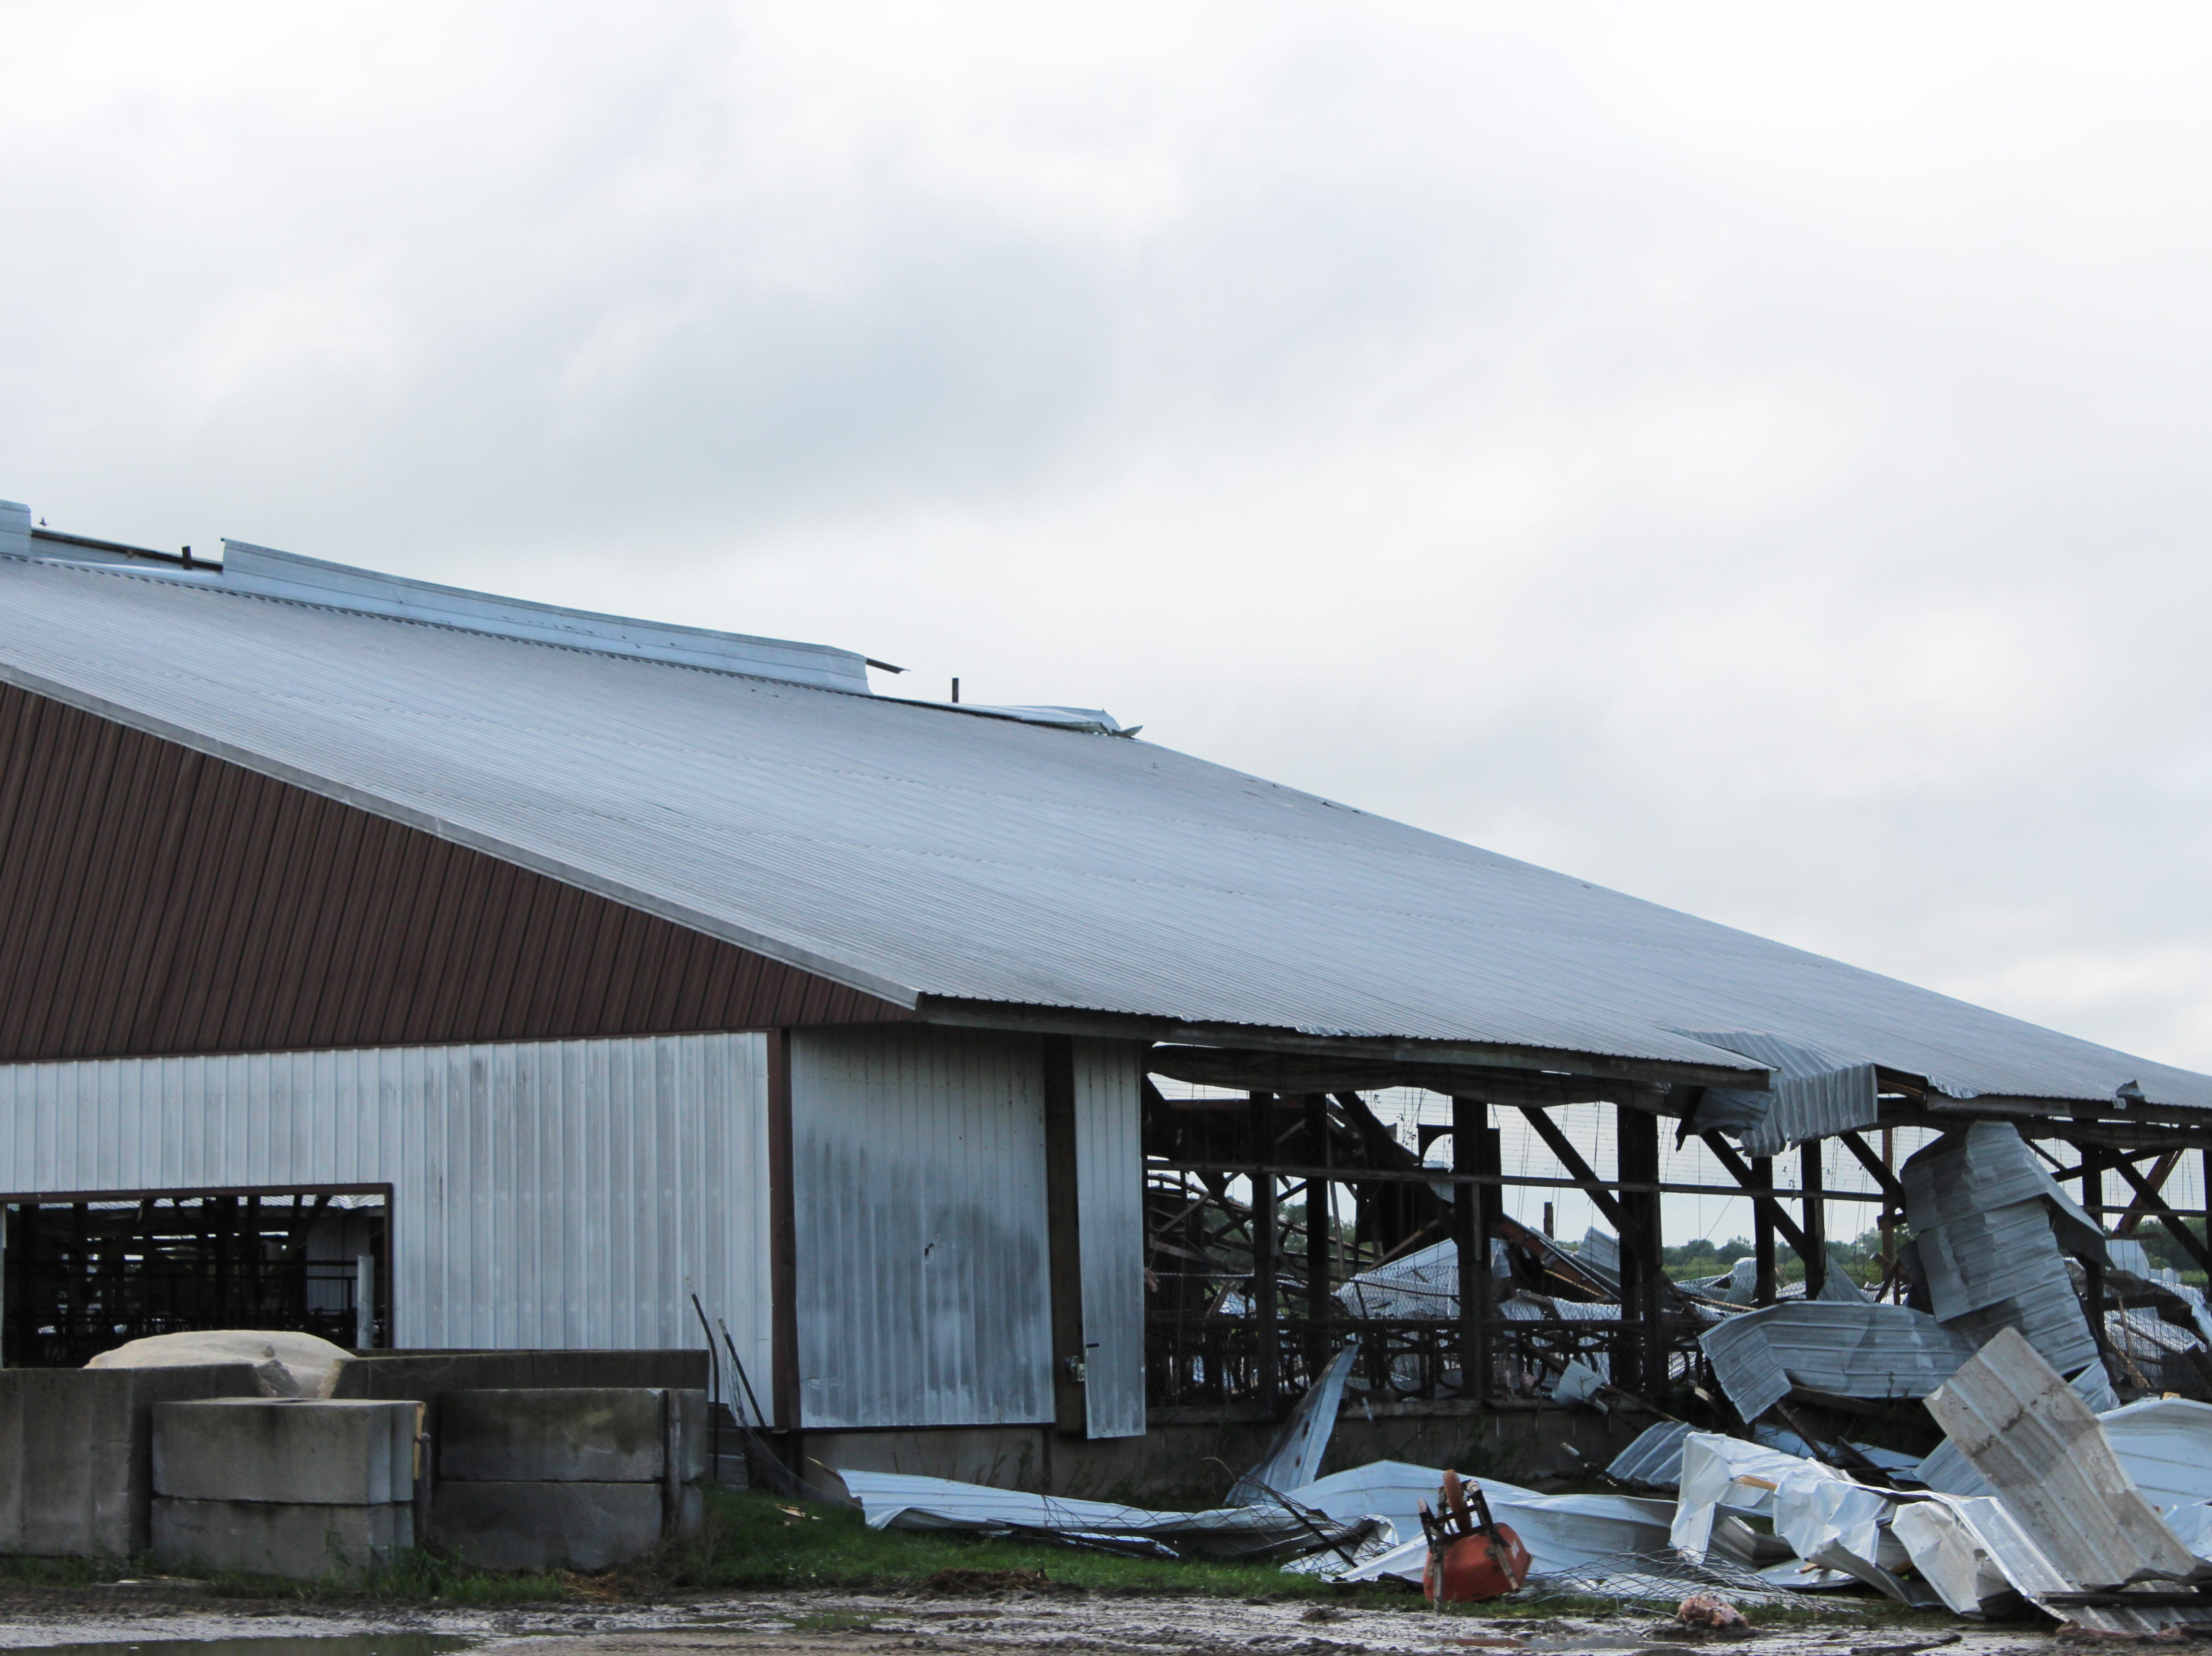 The Wetzel family lost over two dozen dairy cows following a tornado that struck their farm on July 28.